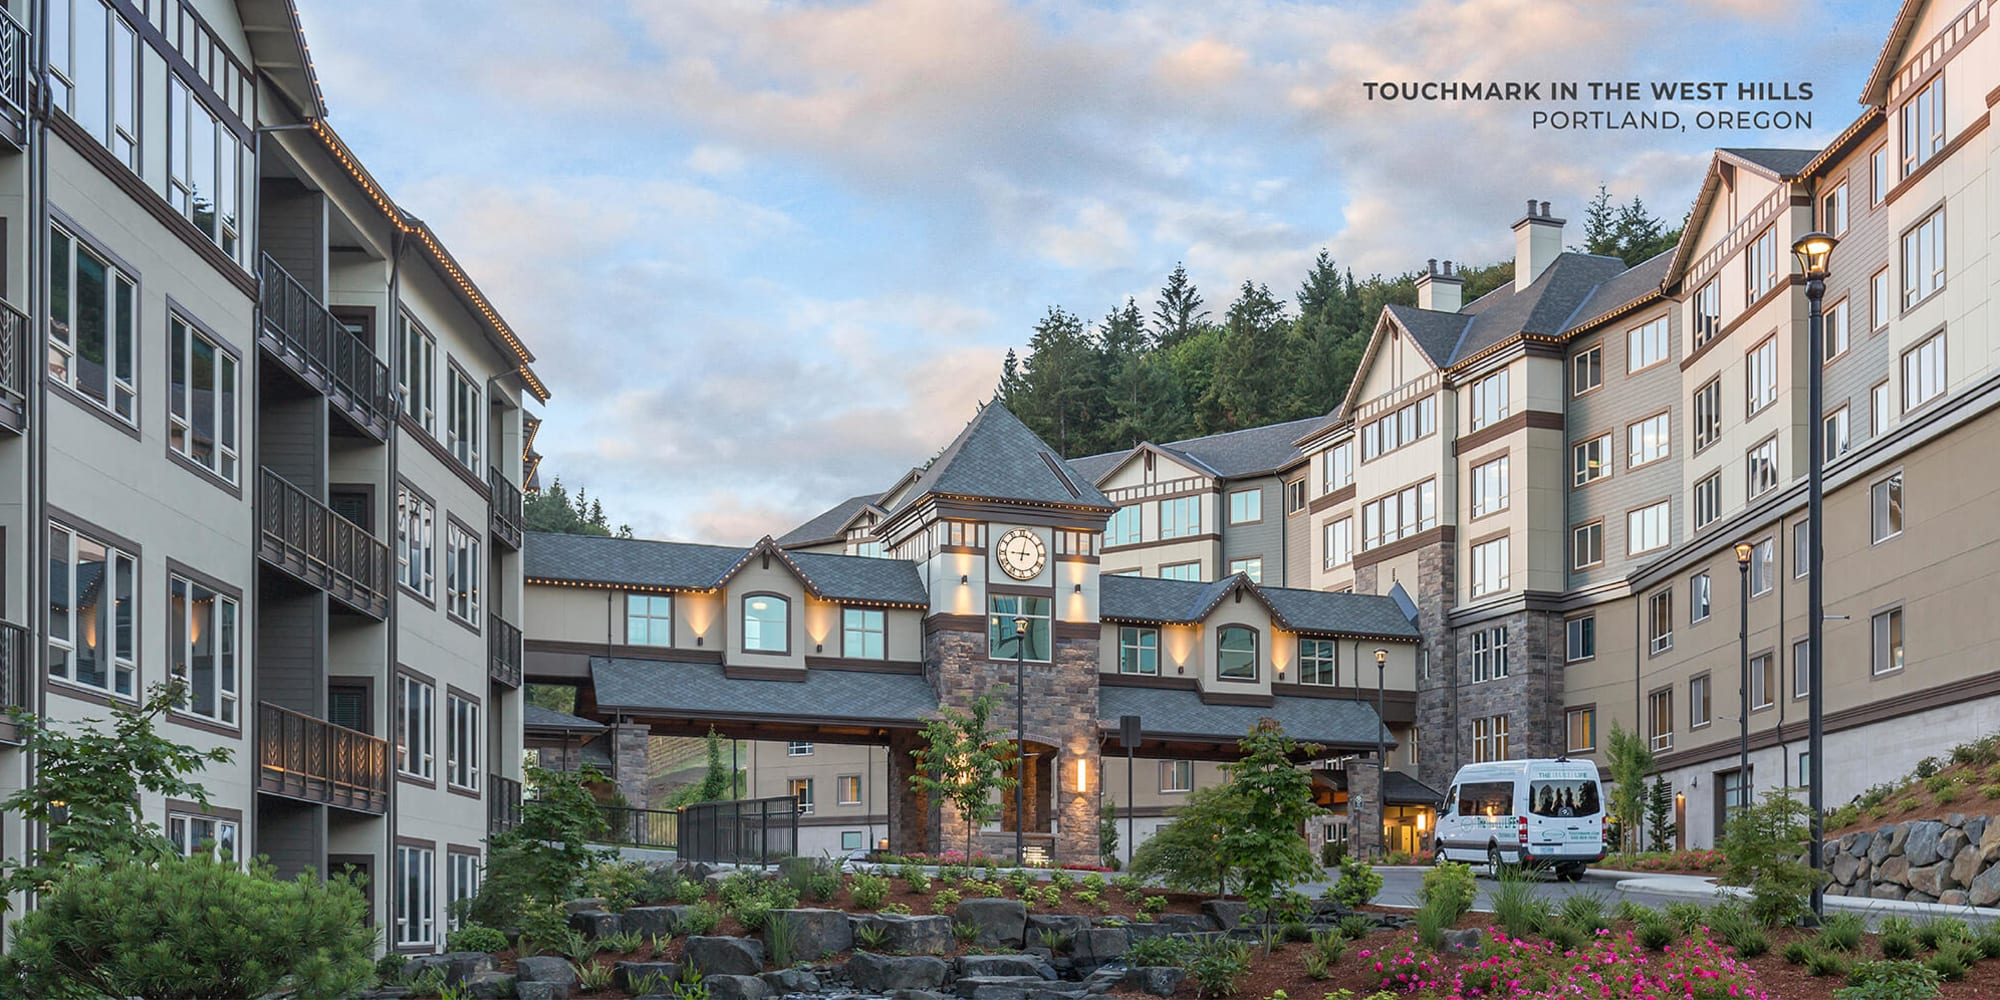 Touchmark in the West Hills in Portland Oregon